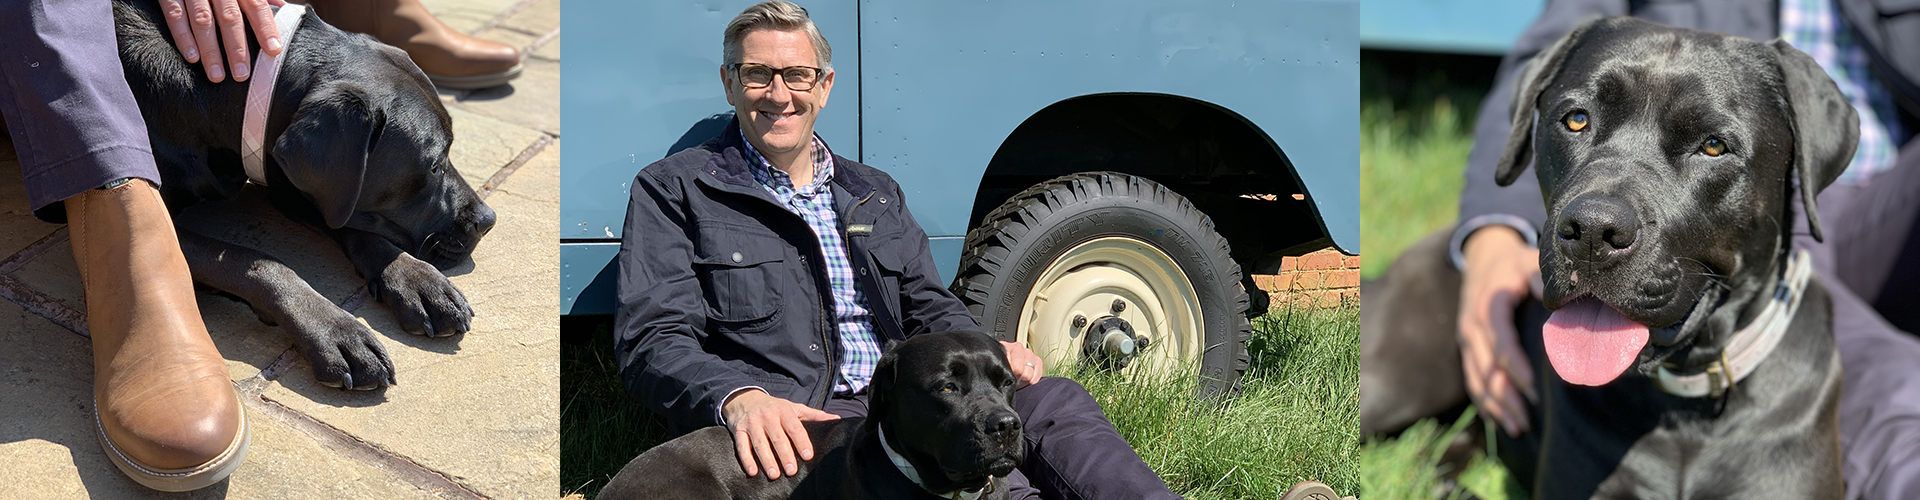 Dogfather Graeme Hall with Dog Lily